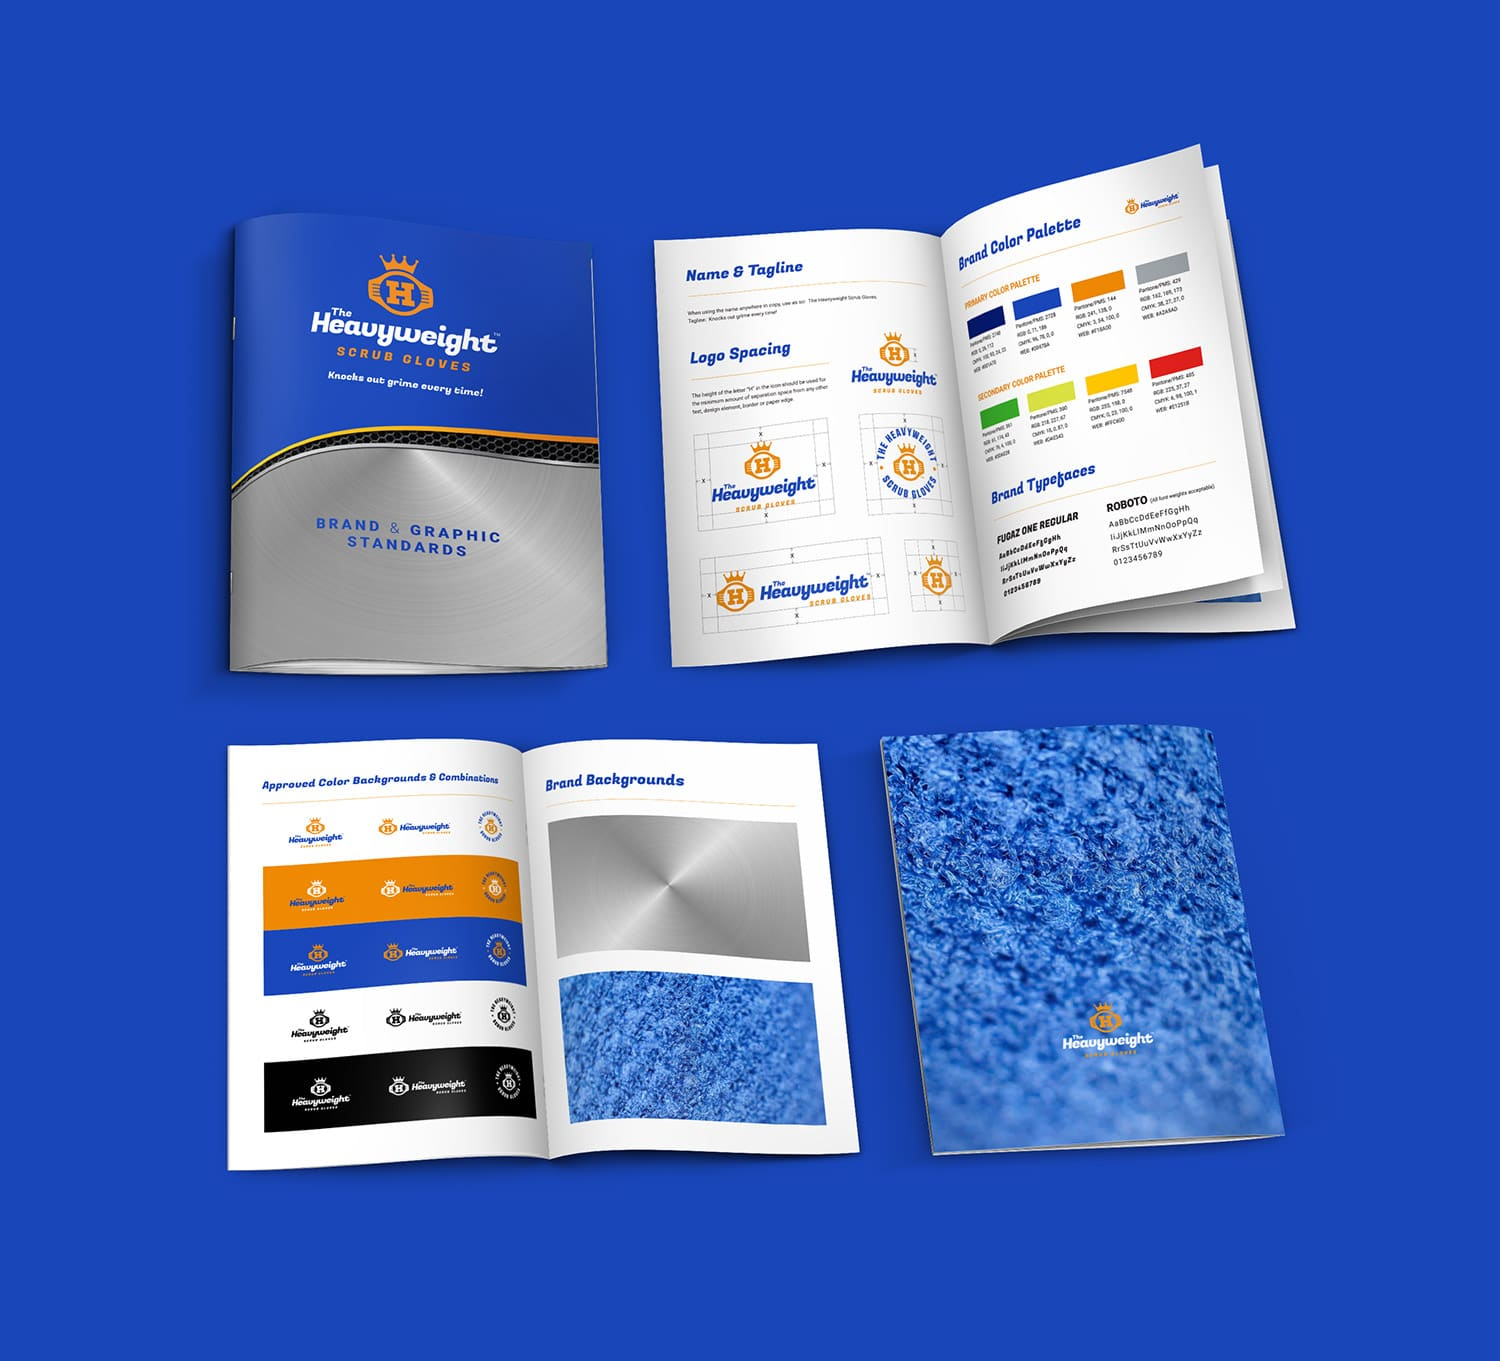 HWSG brand guideline book